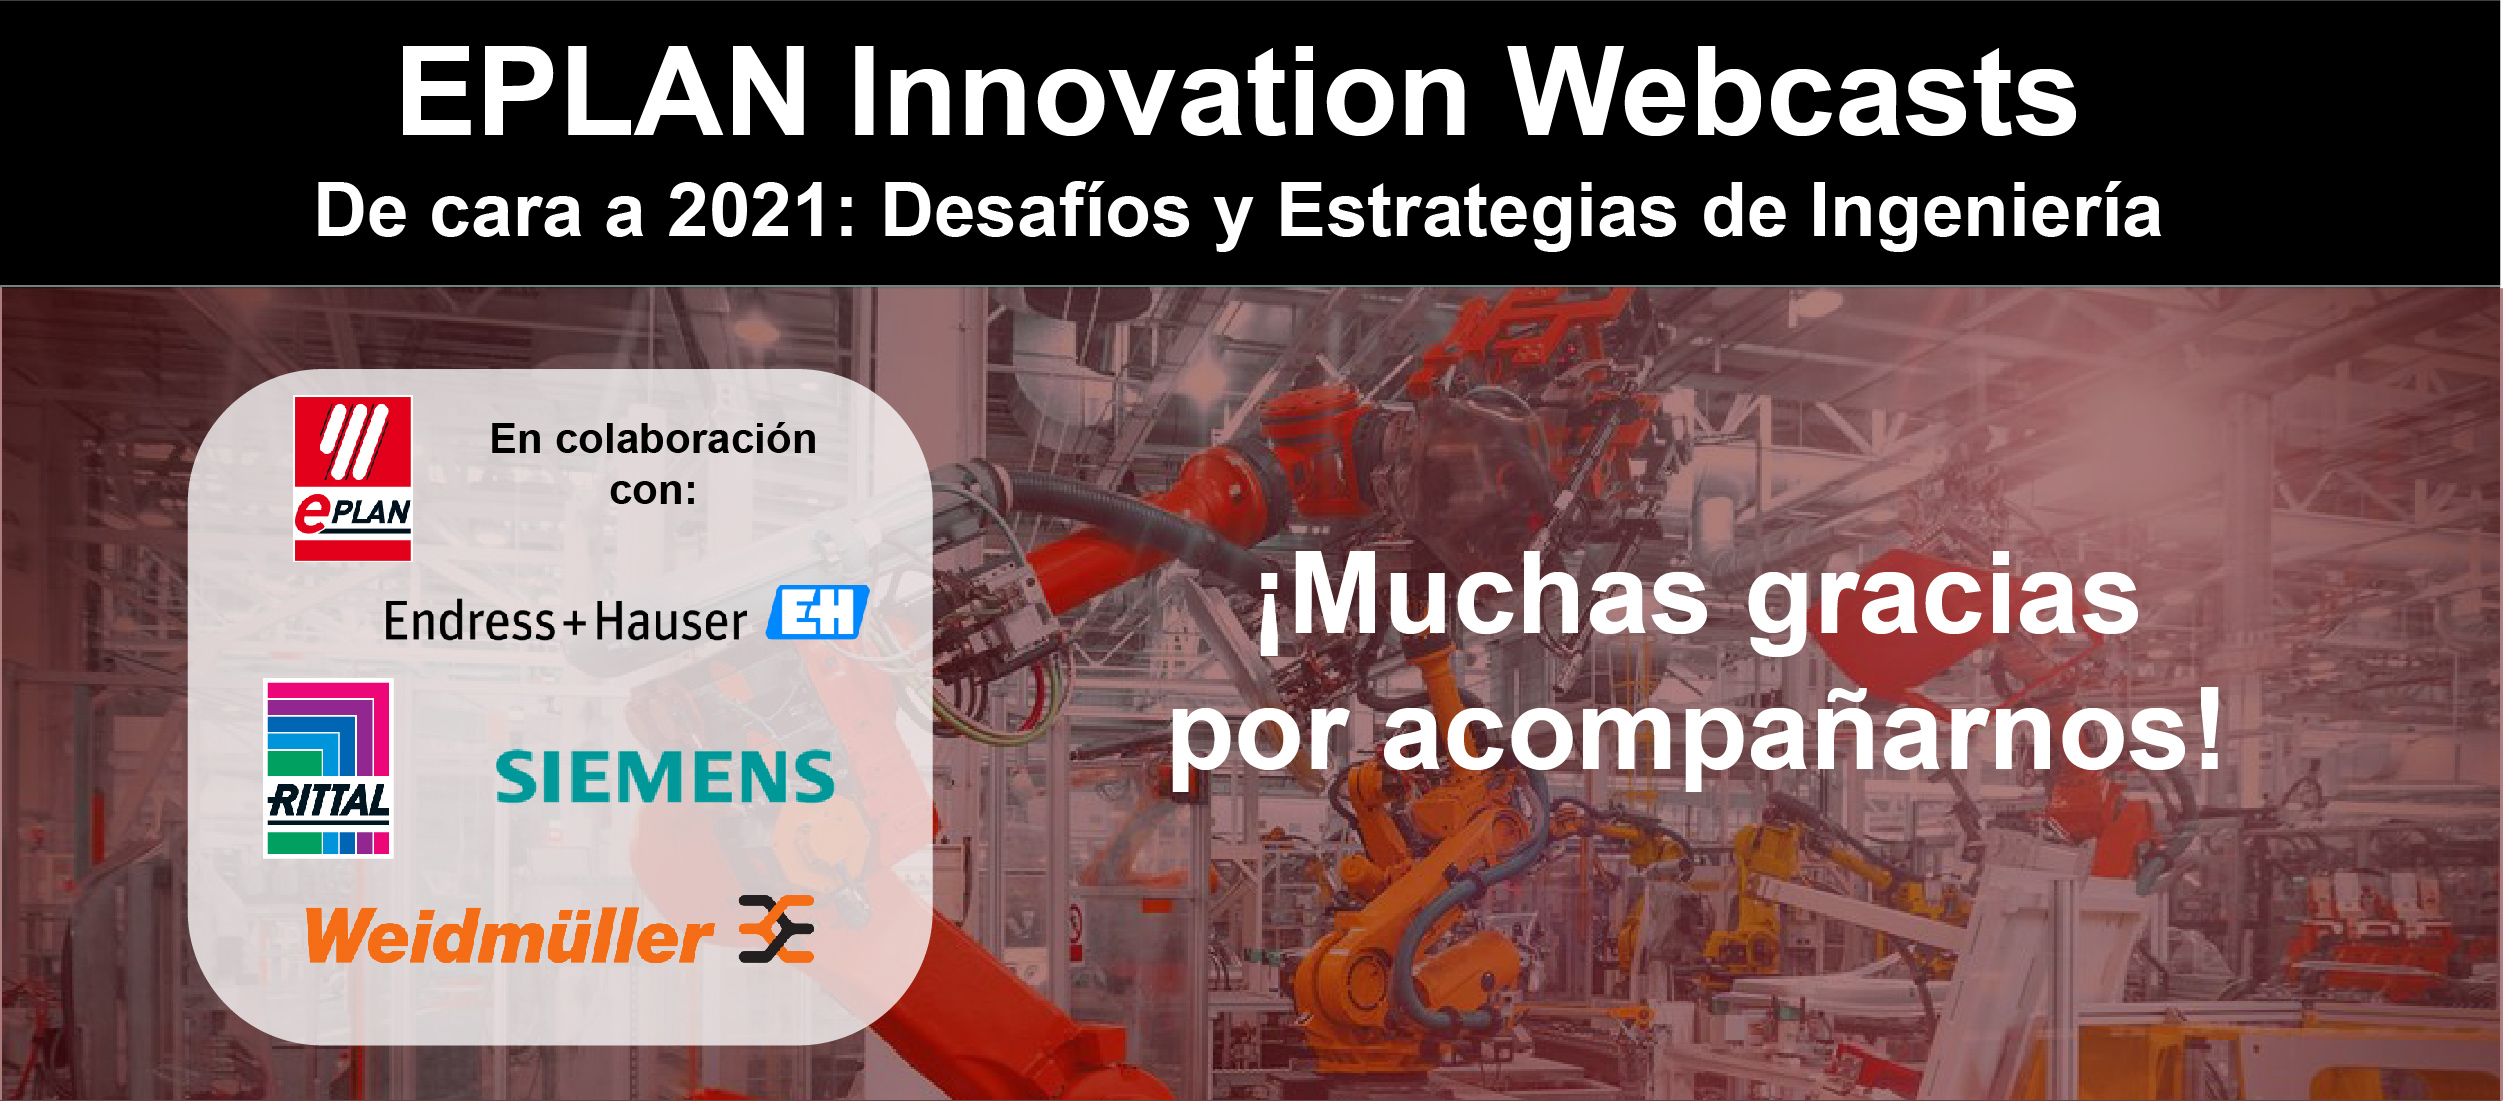 EPLAN_Innovation_Webcasts_nov_2020_gracias